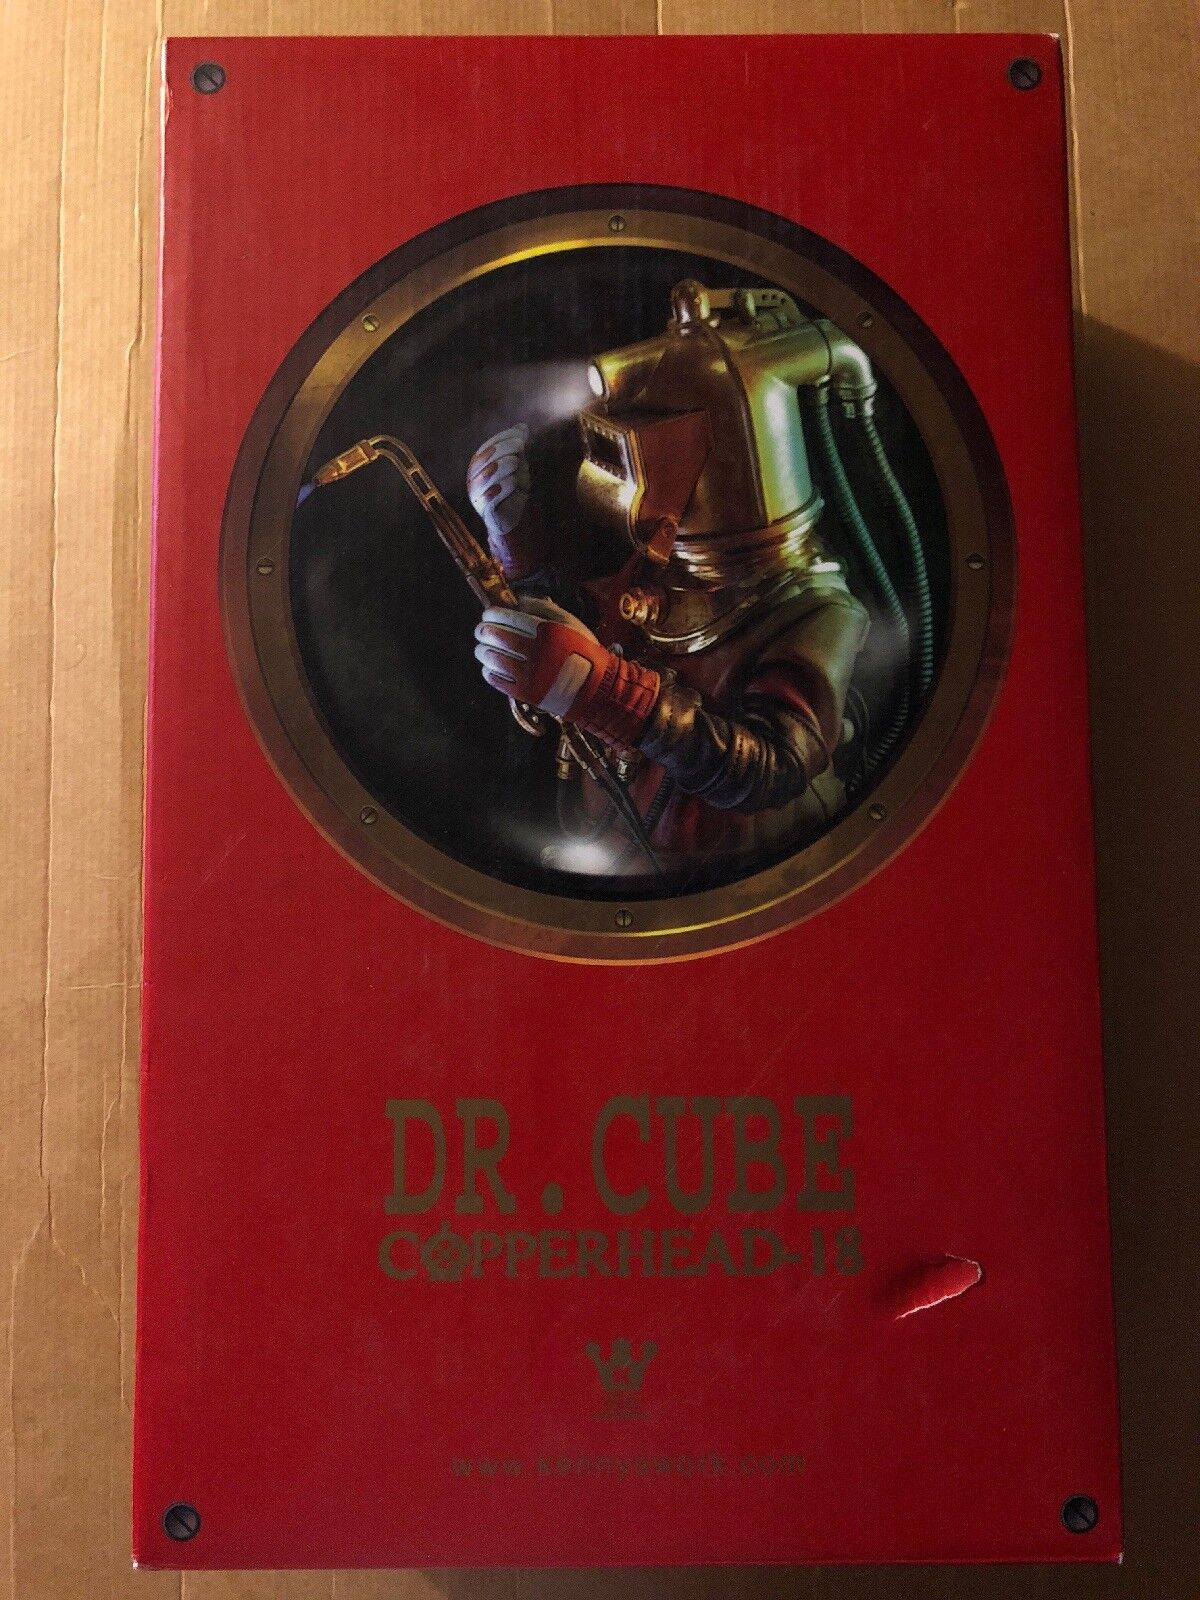 Hot Toys x Kennyswork DR CUBE Copperhead-18 12  figure Extremely HTF